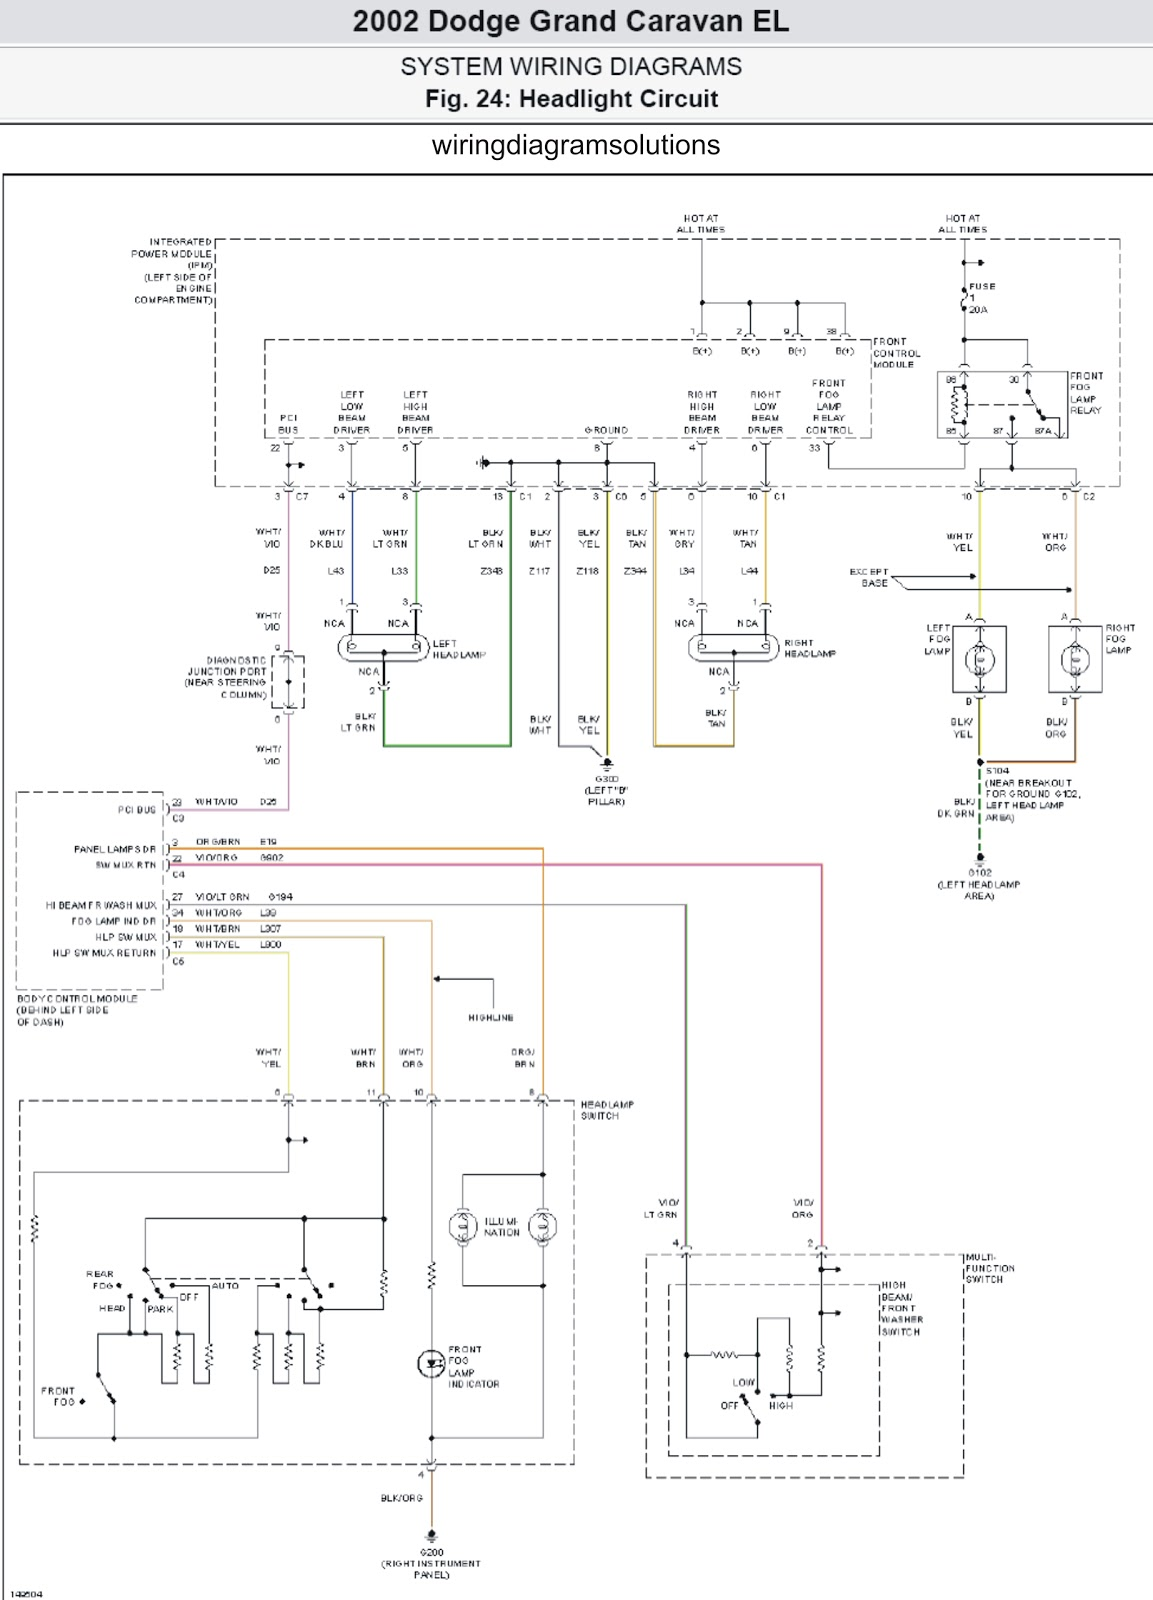 2002+dodge+caravan+Headlight+Circuit caravan zig unit wiring diagram caravan free wiring diagrams lunar caravan wiring diagram at panicattacktreatment.co